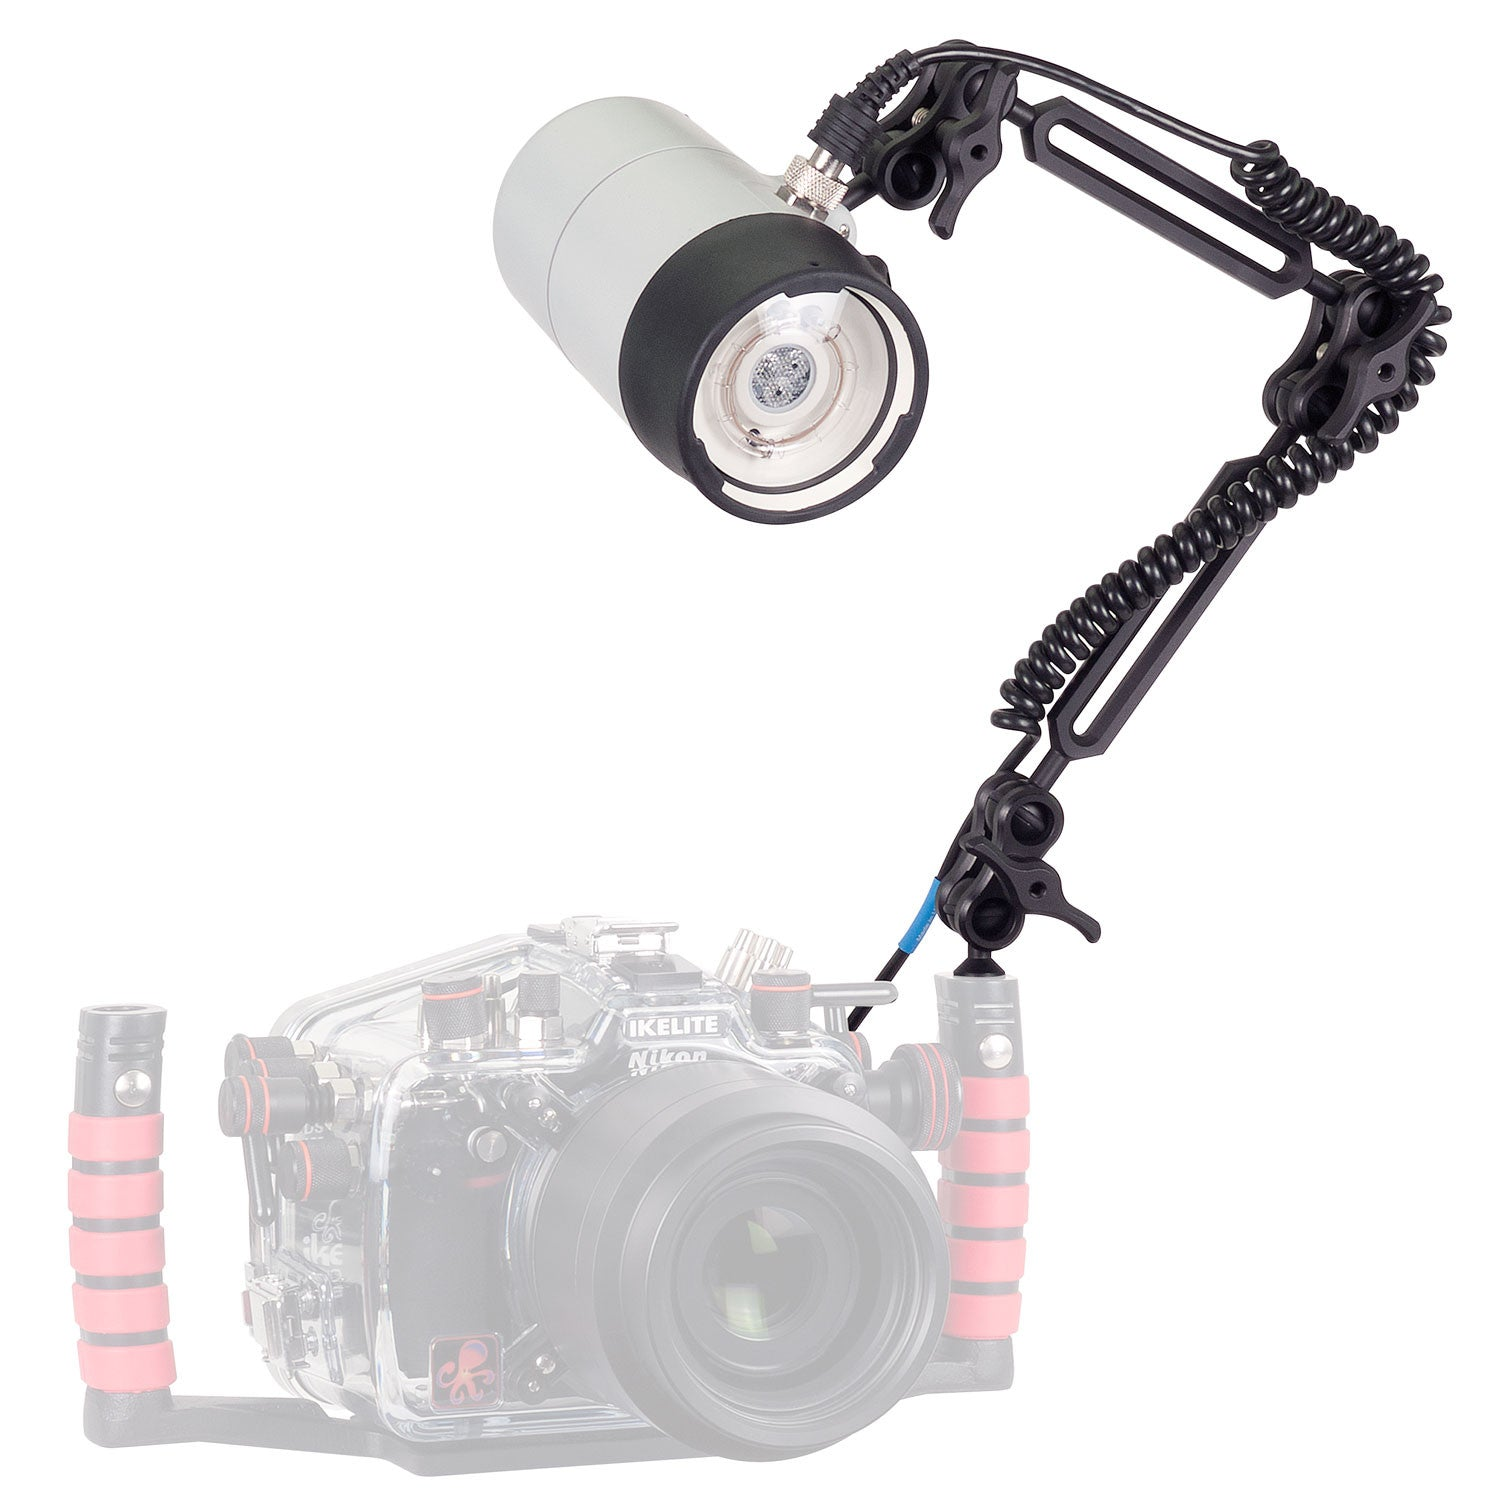 Ikelite DS161 Strobe Kit with Sync Cord + Arm / NiMH 4061.35 - UNDERWATER - Ikelite - Helix Camera